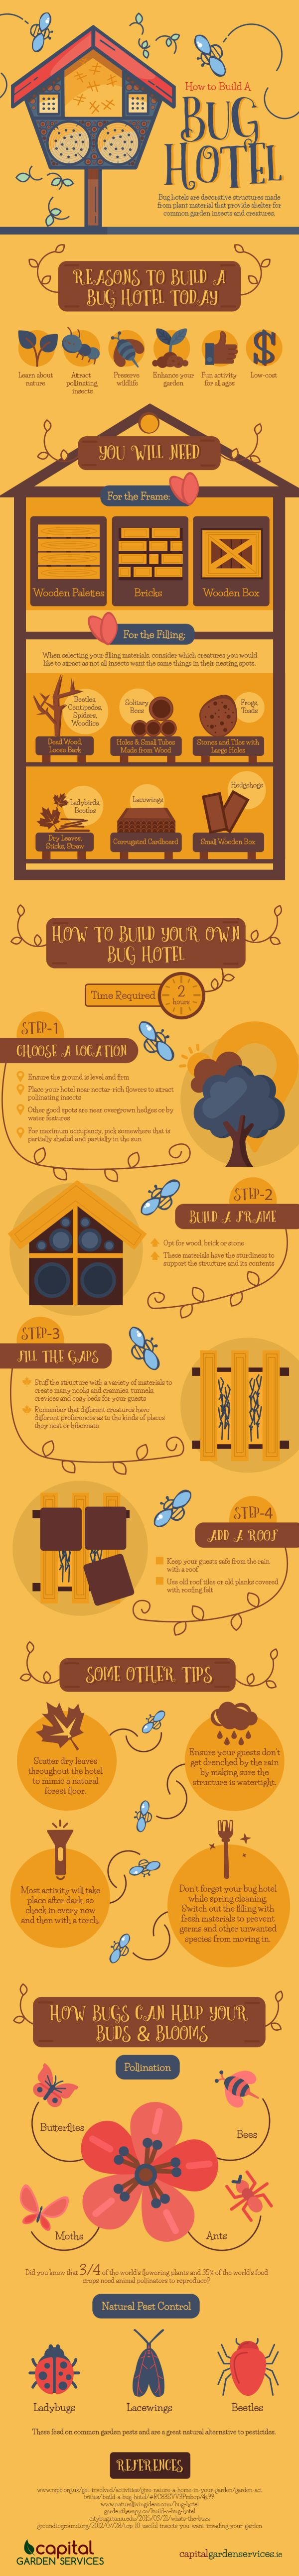 Building a Bug Hotel Infographic